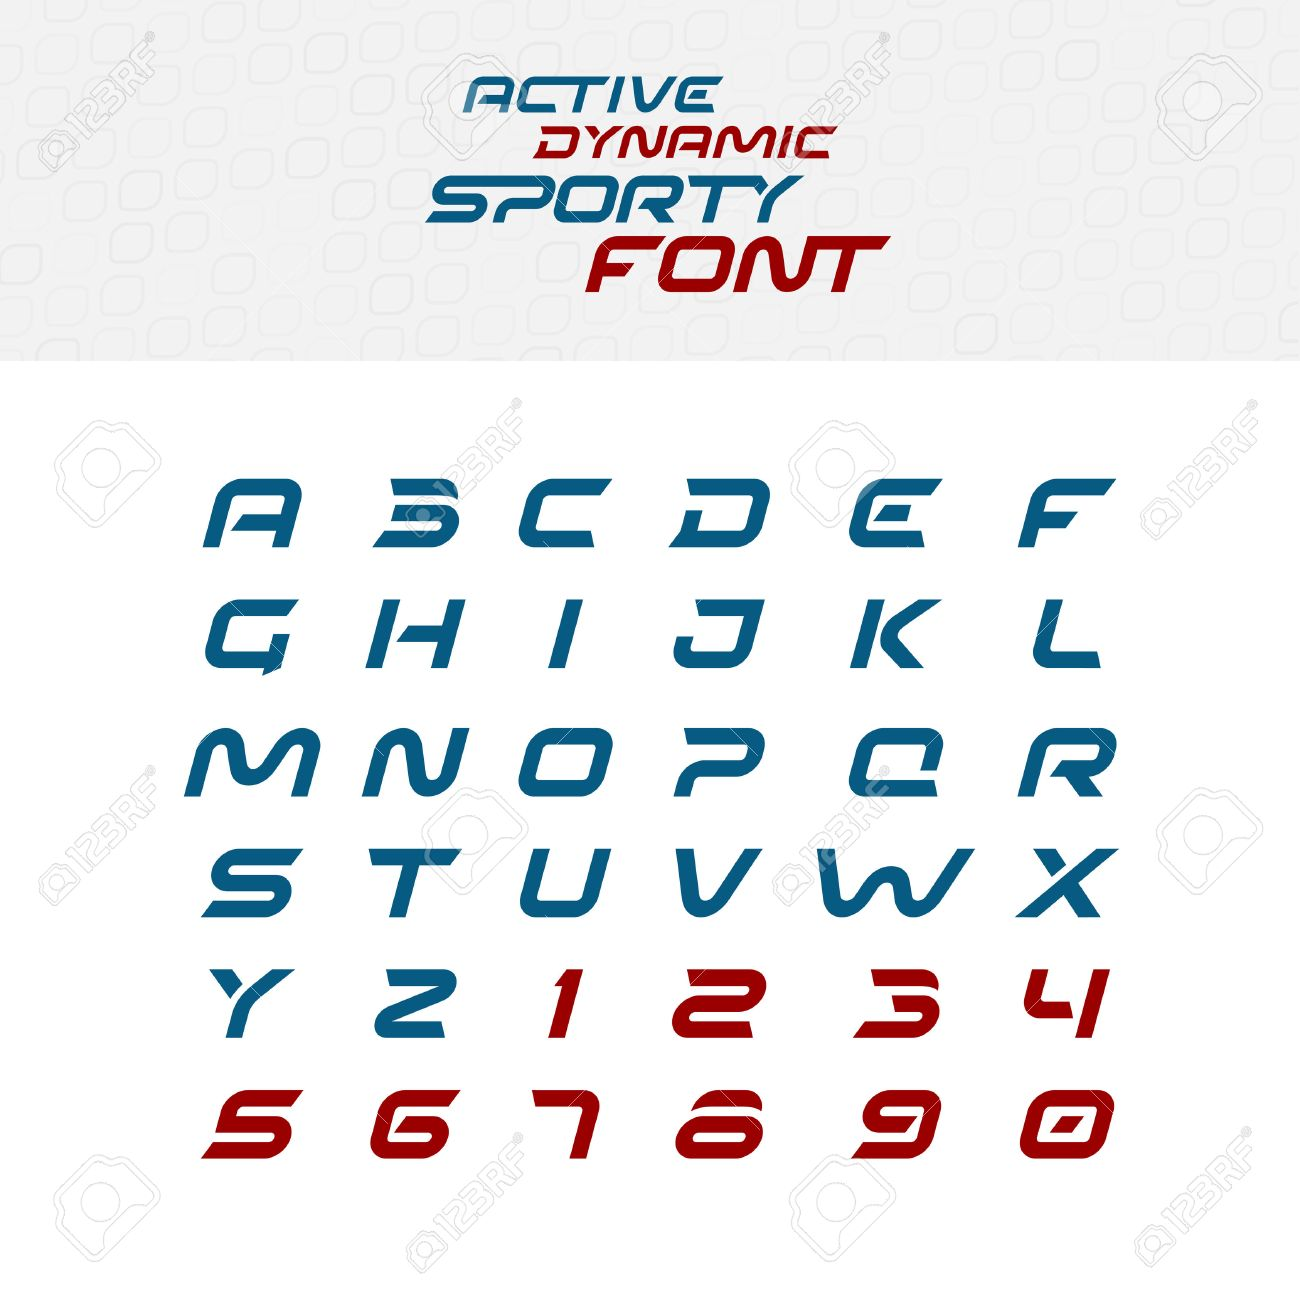 Sport Techno Font Alphabet Letters Skew Italic Dynamic Typeface Capital And Numbers